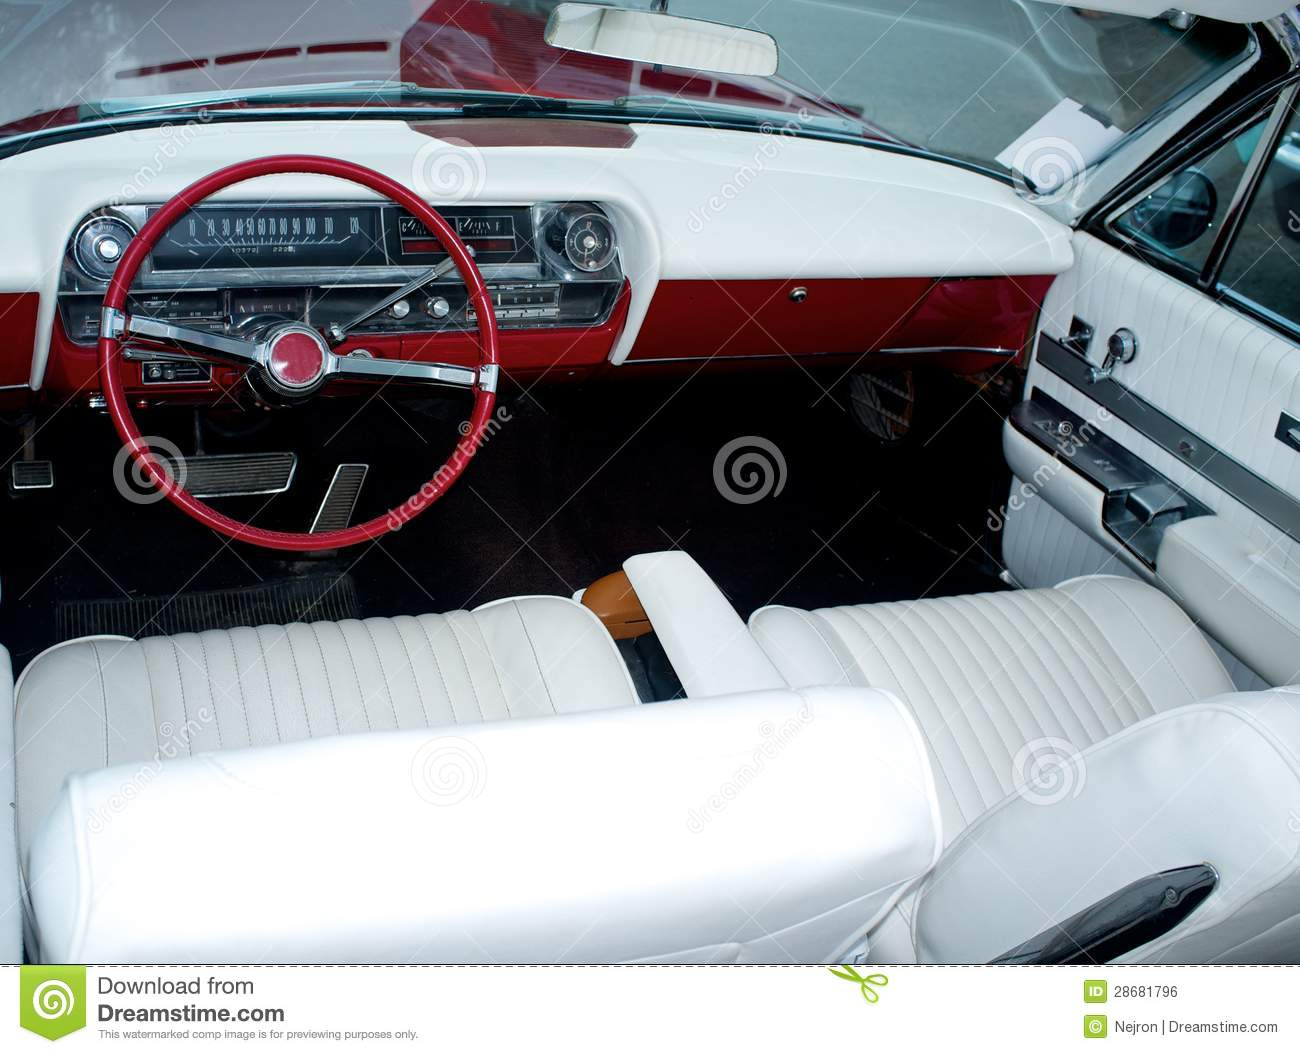 vintage car luxury interior royalty free stock image image 28681796. Black Bedroom Furniture Sets. Home Design Ideas